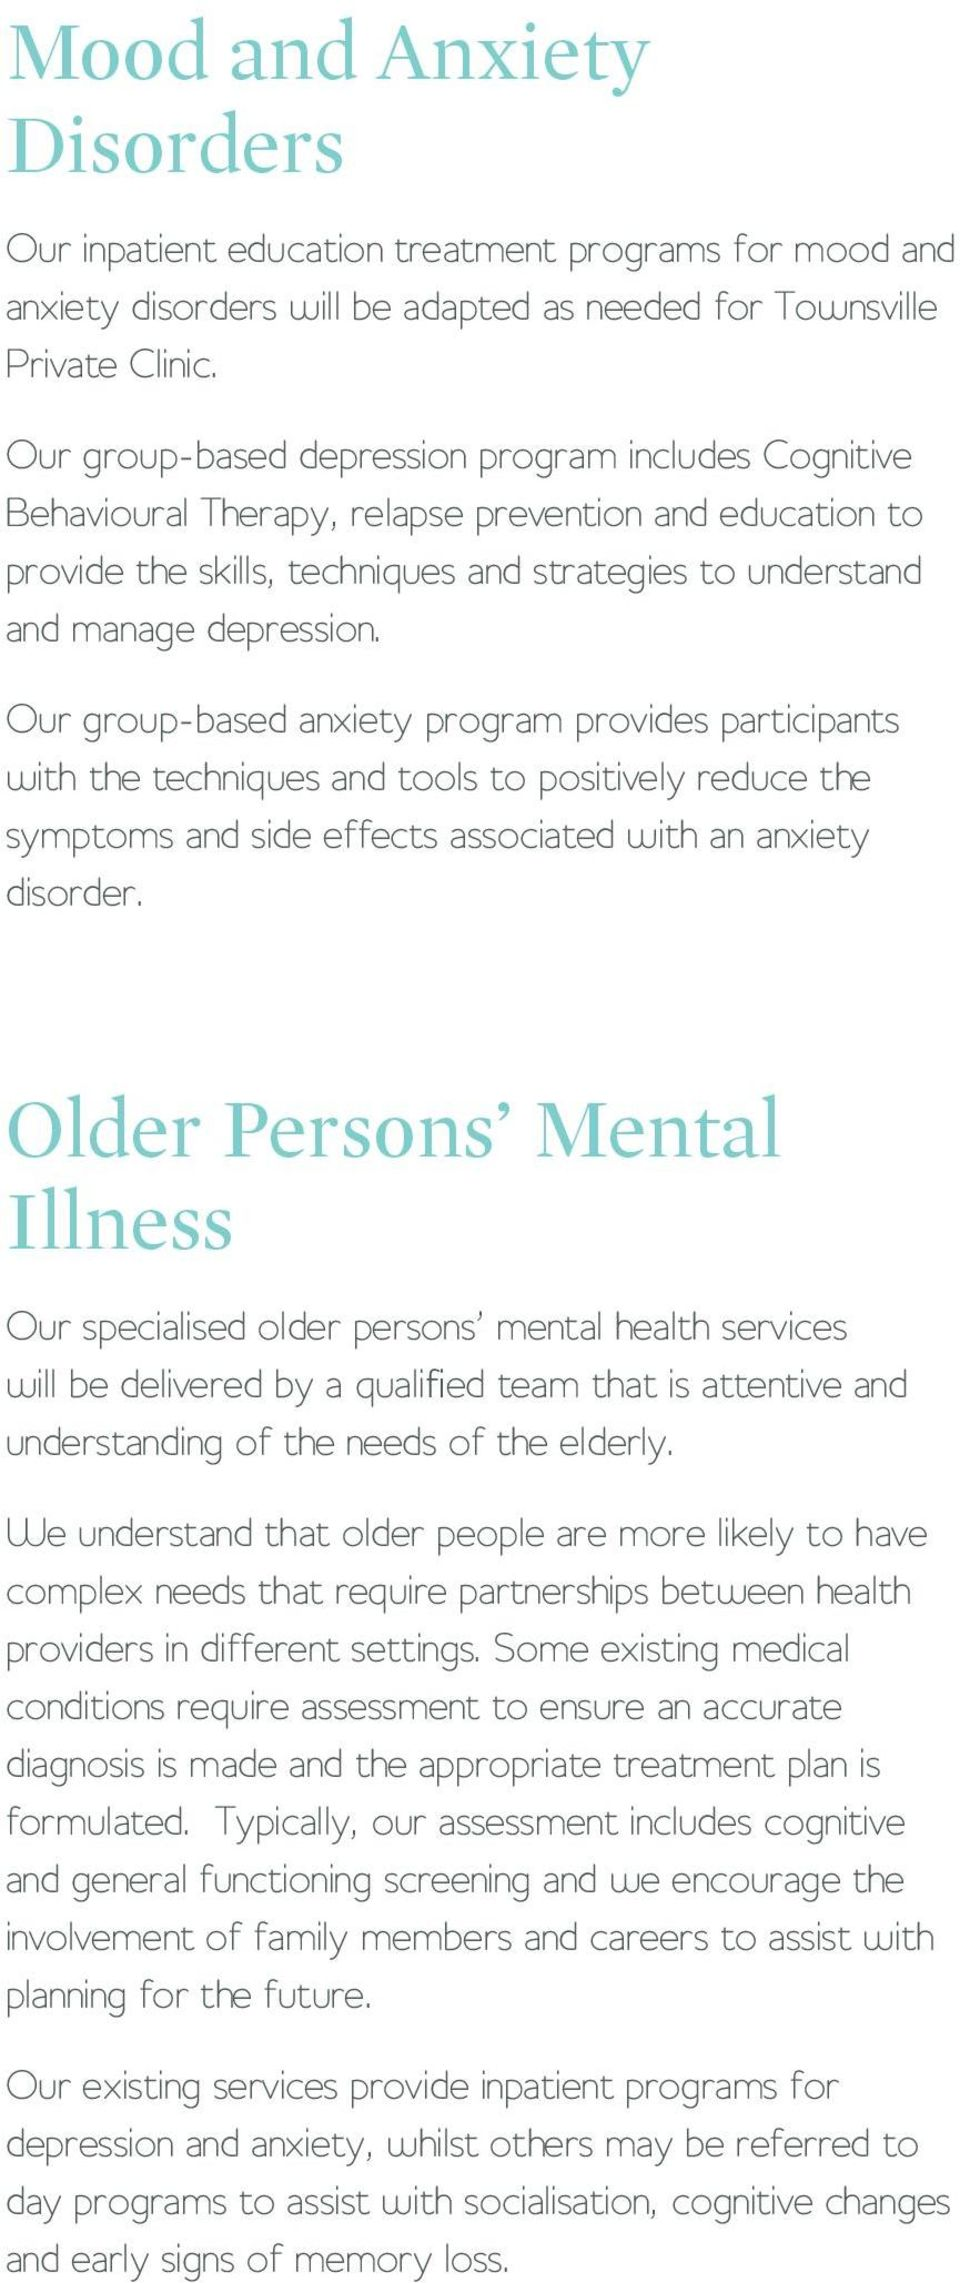 Our group-based anxiety program provides participants with the techniques and tools to positively reduce the symptoms and side effects associated with an anxiety disorder.